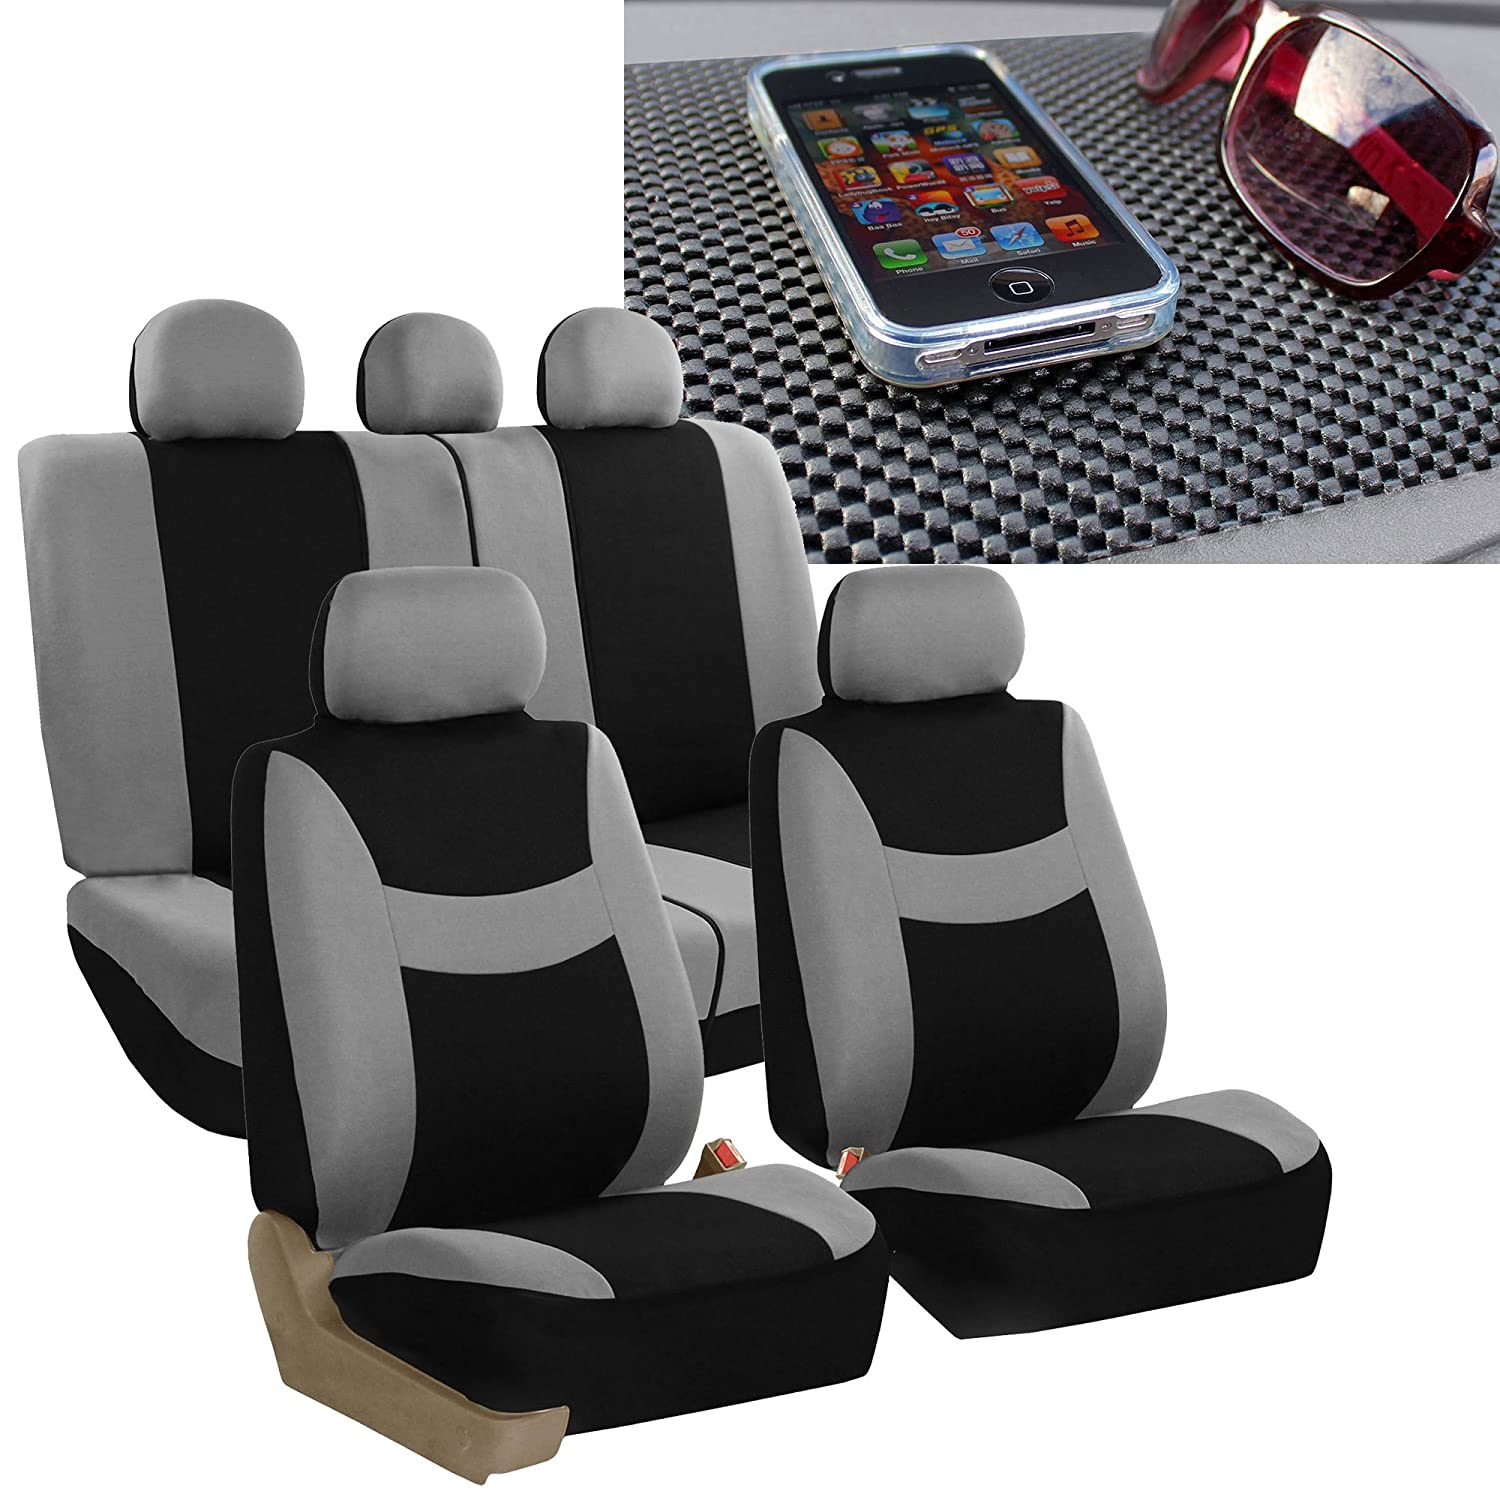 FH GROUP FH-FB030115 Light & Breezy Cloth Seat Cover Set Airbag & Split Ready, Gray / Black with FH GROUP FH1002 Non-slip Dash Grip Pad- Fit Most Car, Truck, Suv, or Van